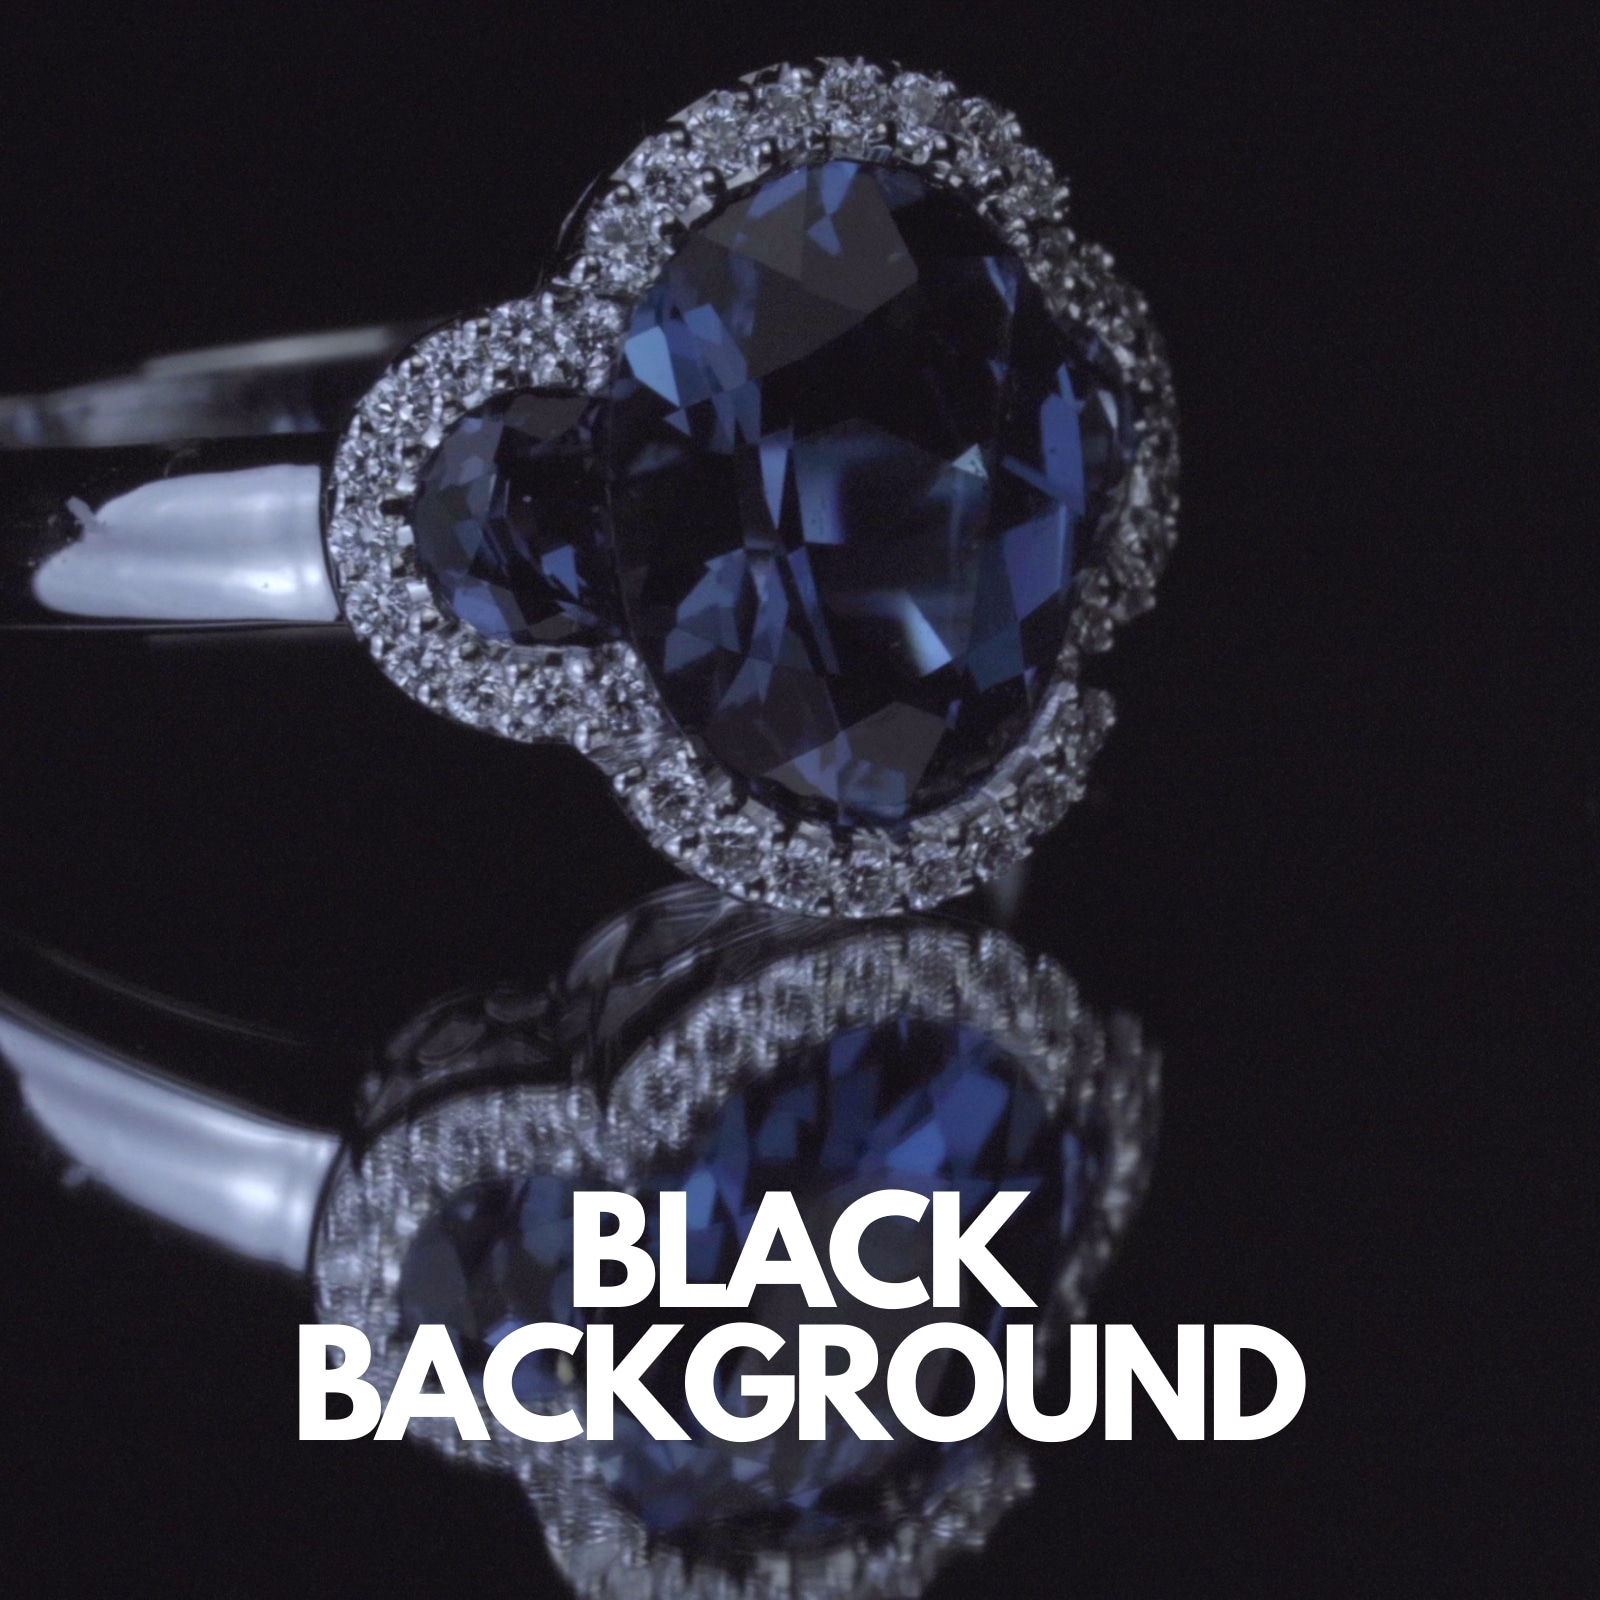 How a black background looks when shooting a piece of jewelry